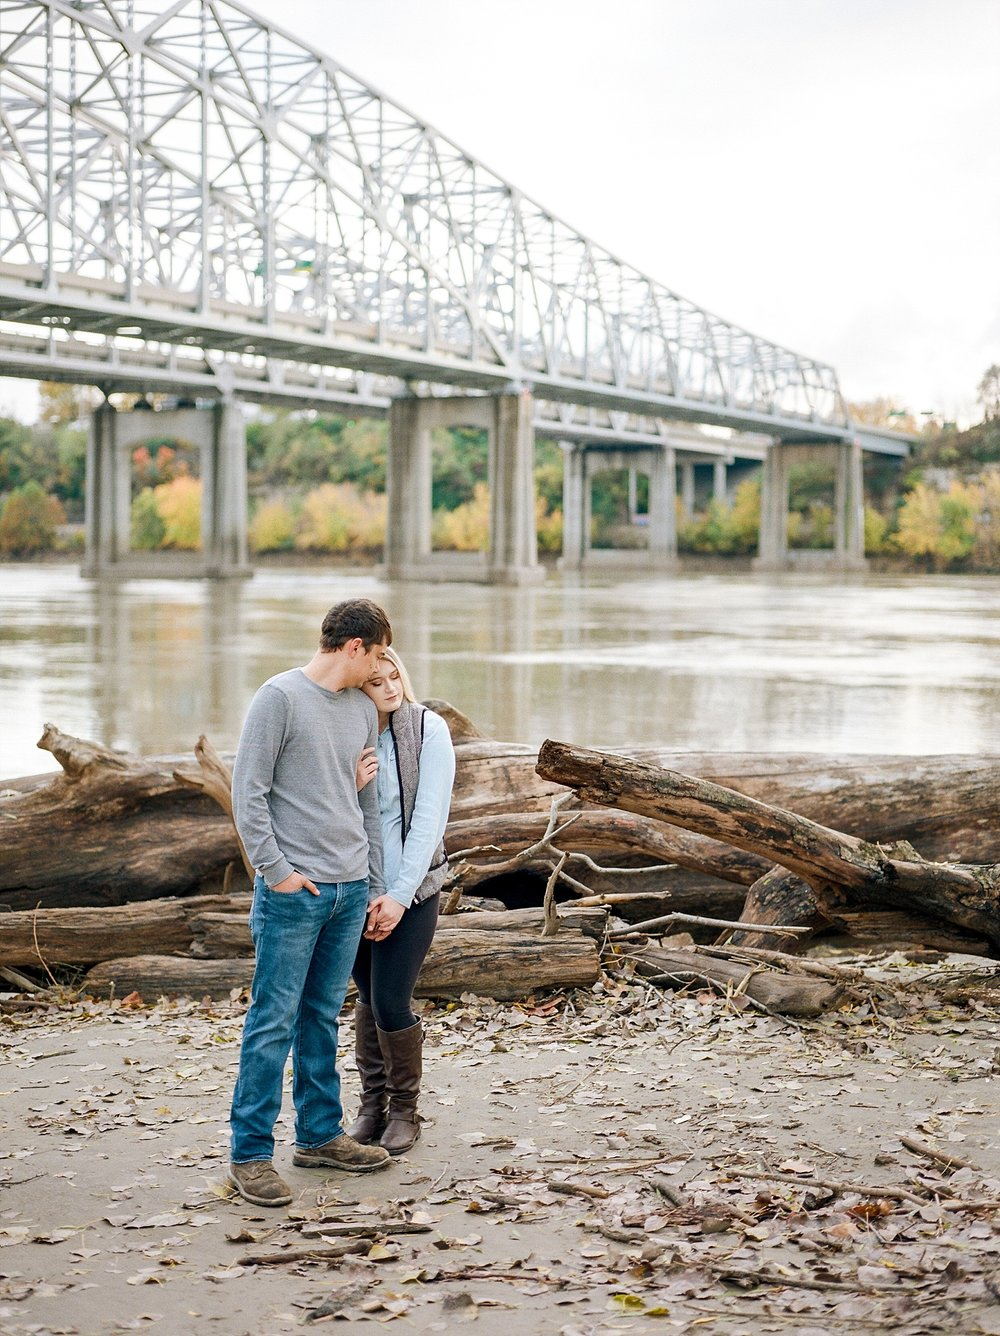 Fall Couples Session on Shore of Missouri River by Kelsi Kliethermes Photography Kansas City Missouri Wedding Photographer_0009.jpg